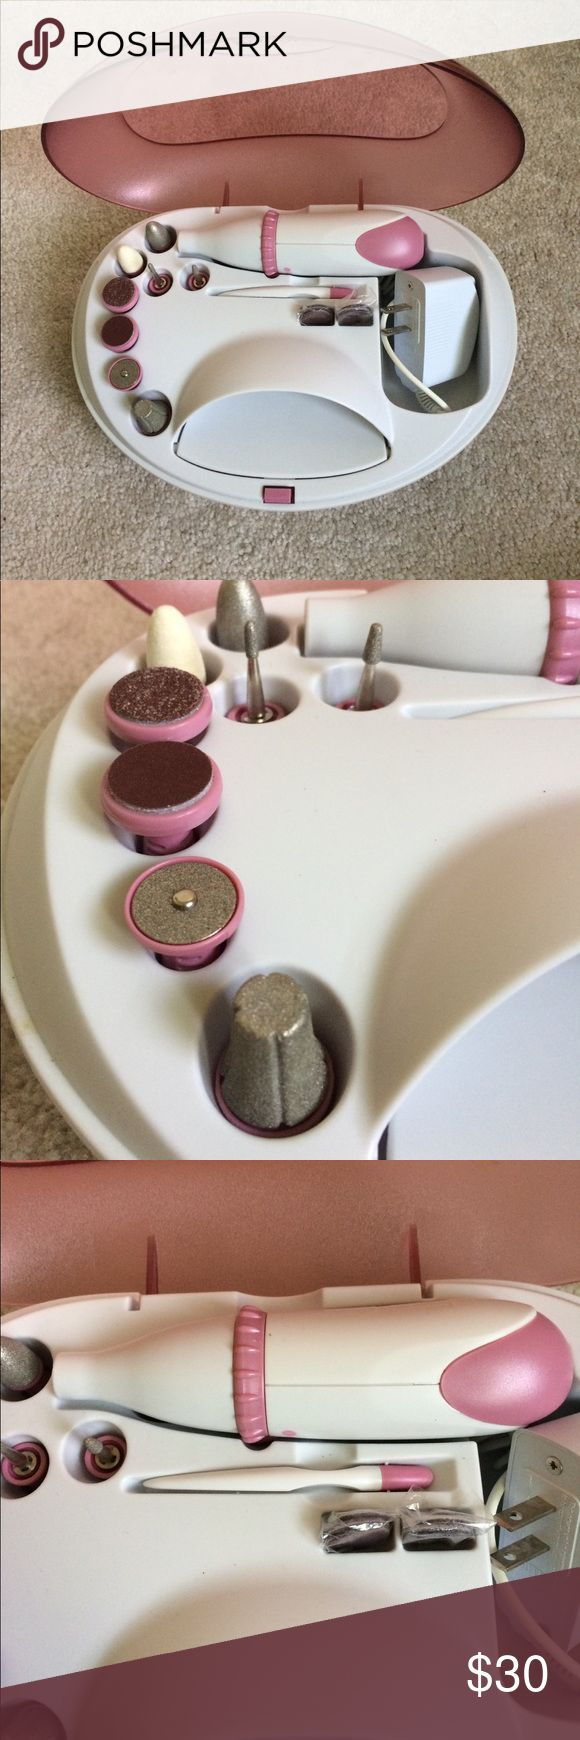 NWOT manicure kit new without tags! never been used! complete manicure kit.   Corded mani/pedi tool comes with a variety of attachments. ncludes a polishing disk for buffing and smoothing nails; fine, medium and coarse filing disks; pointed thin cone for filing the edge of nails; rounded cone filer for thicker nails; cleaning brush; built-in nail dryer; and replacement pads.   Low and high speed settings Nail dryer and mani/pedi tool charge via an included AC adapter Accessories